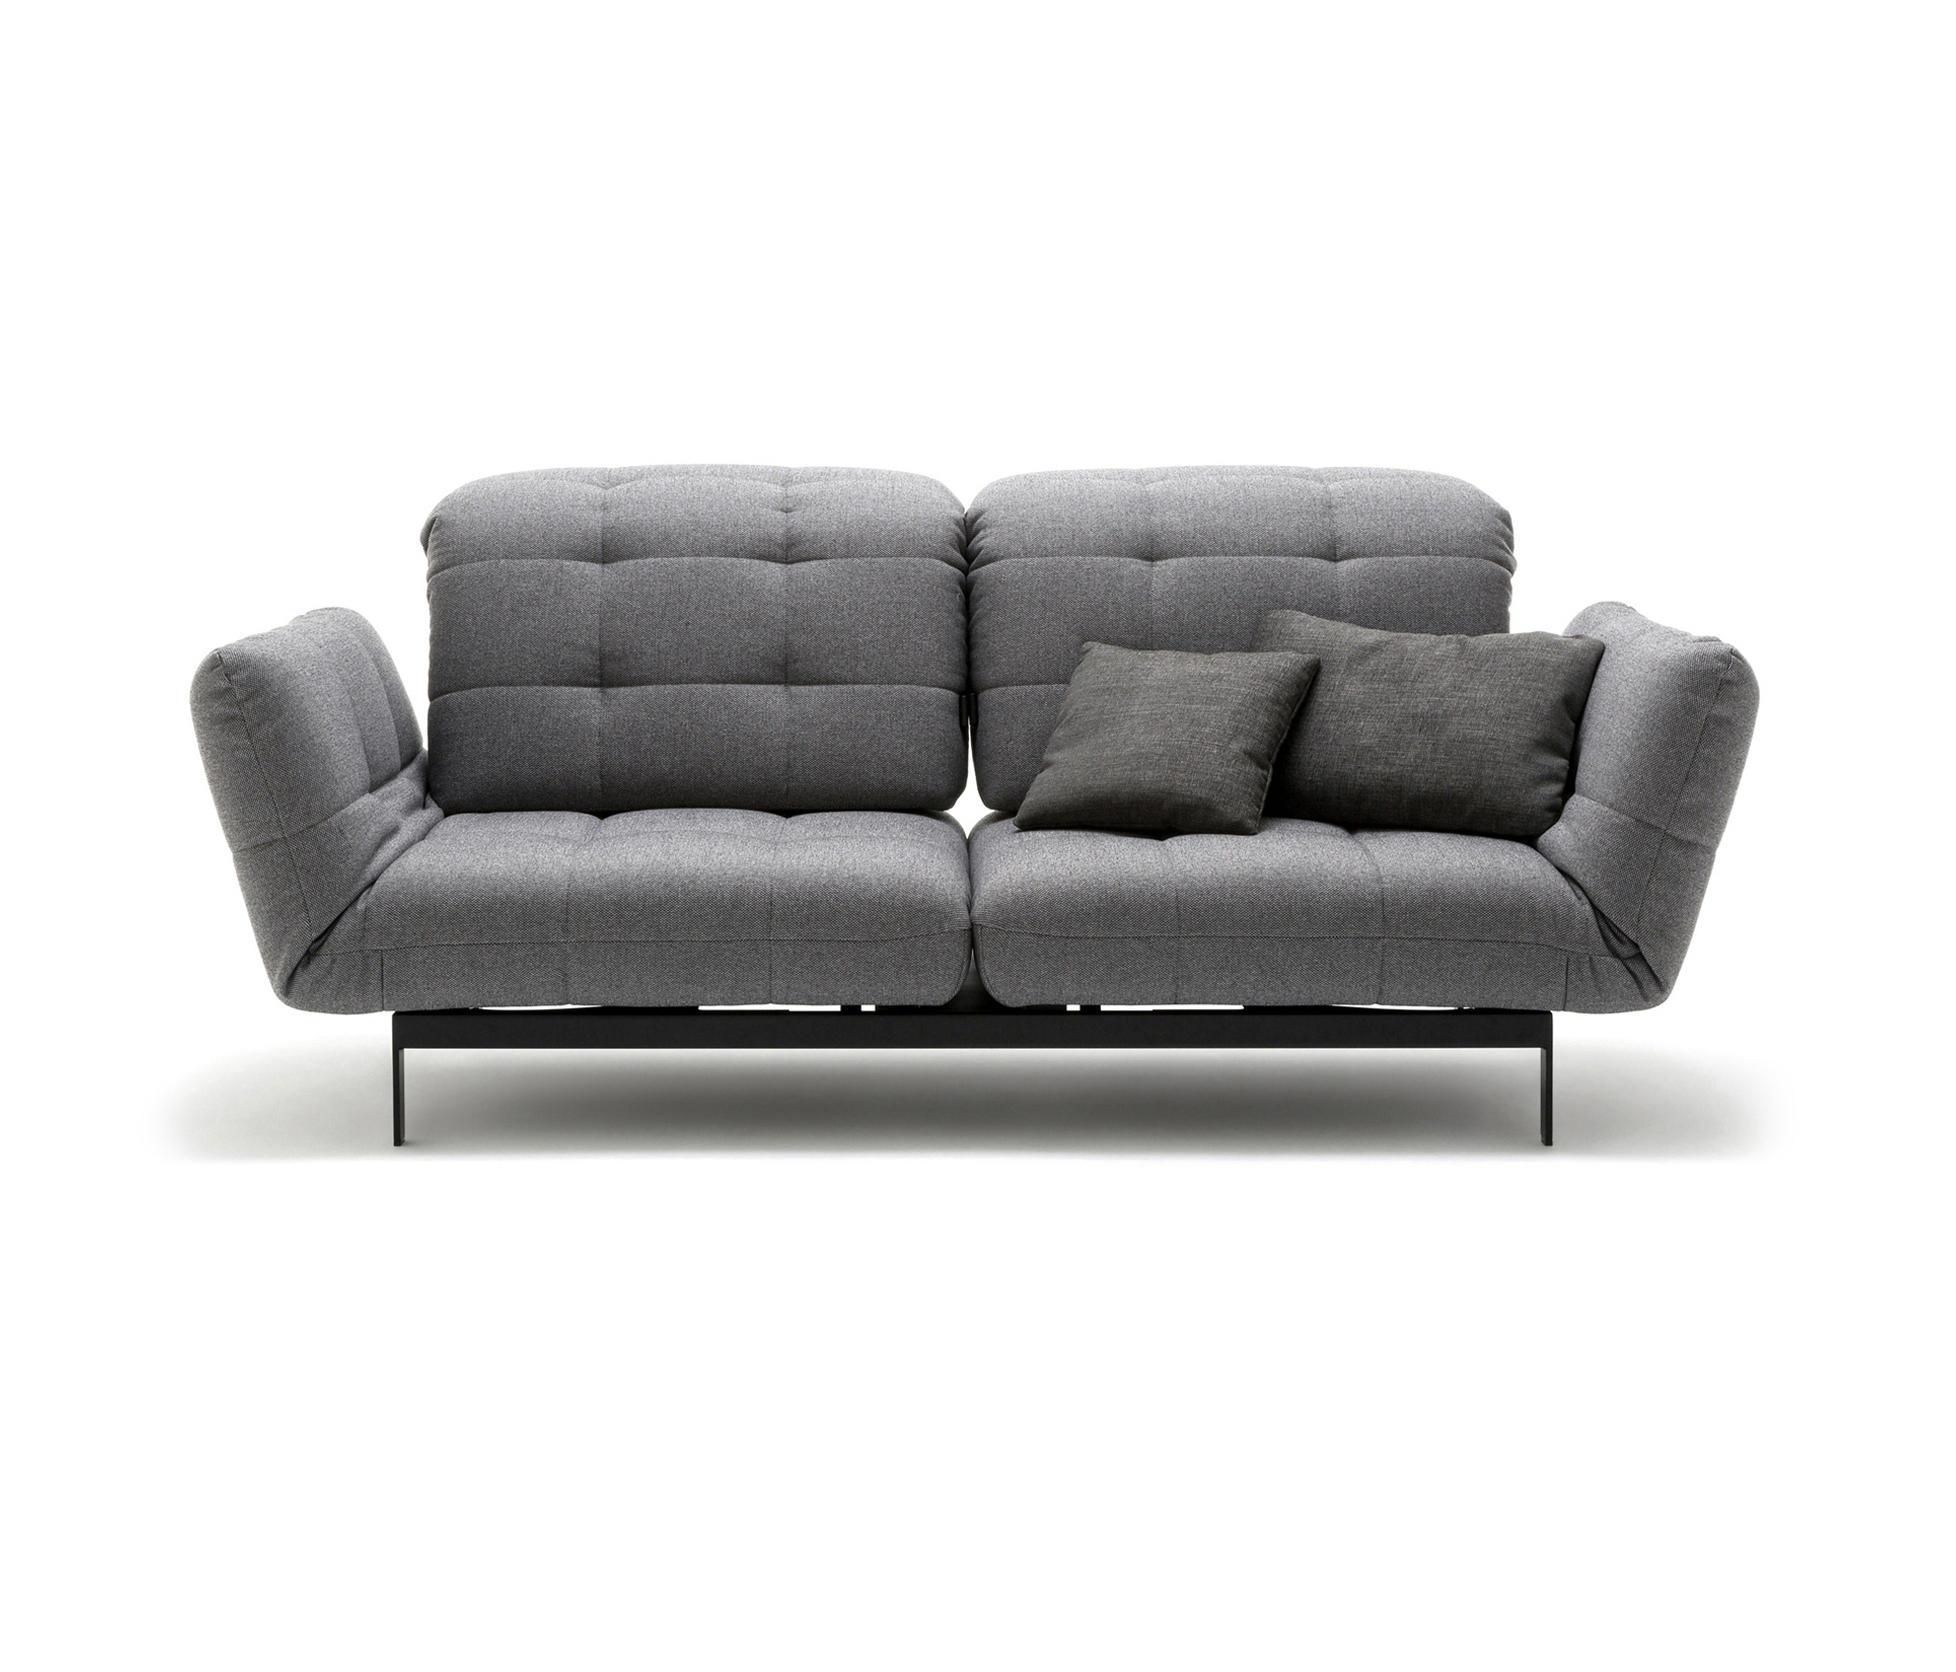 Rolf benz agio sofas von rolf benz architonic for Rolf benz nagold